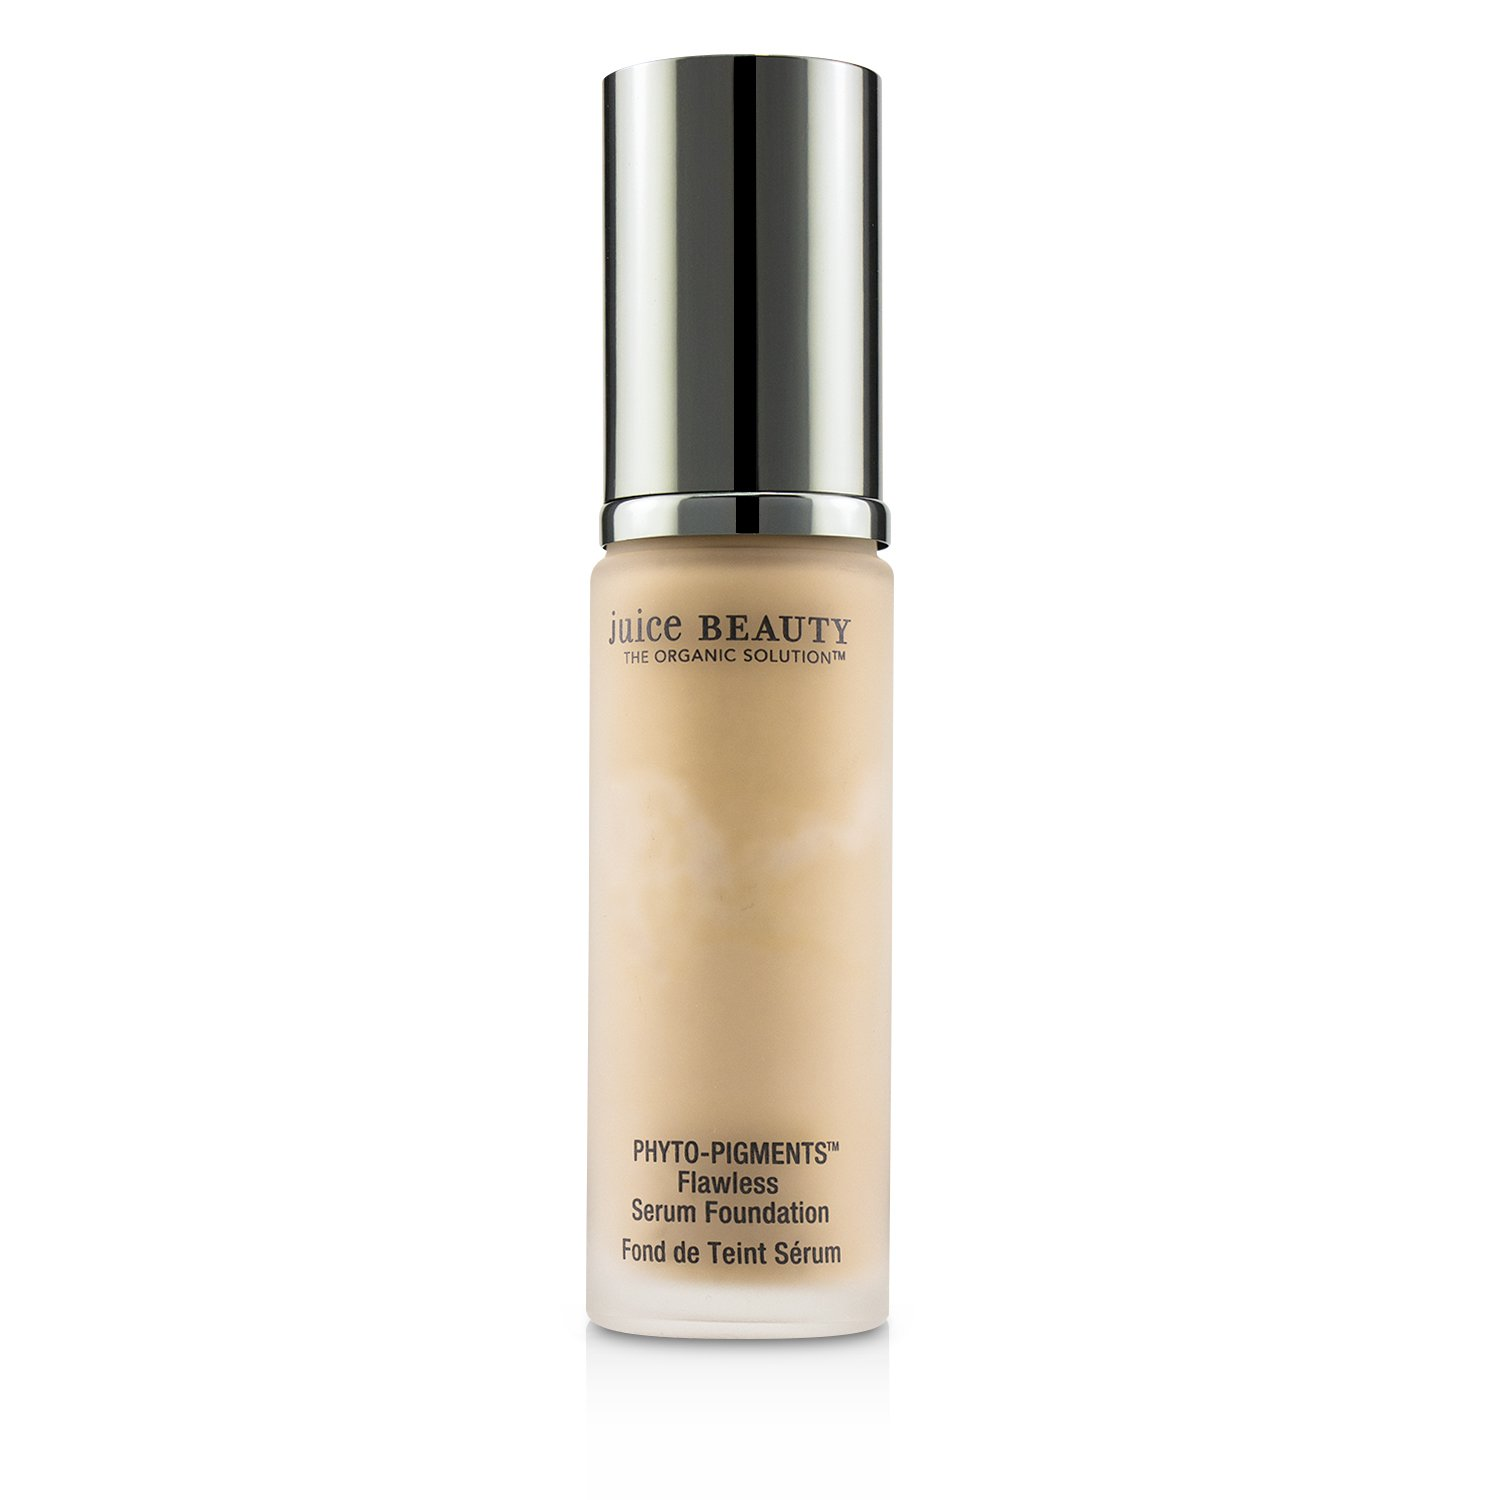 Juice-Beauty-Phyto-Pigments-Flawless-Serum-Foundation thumbnail 8